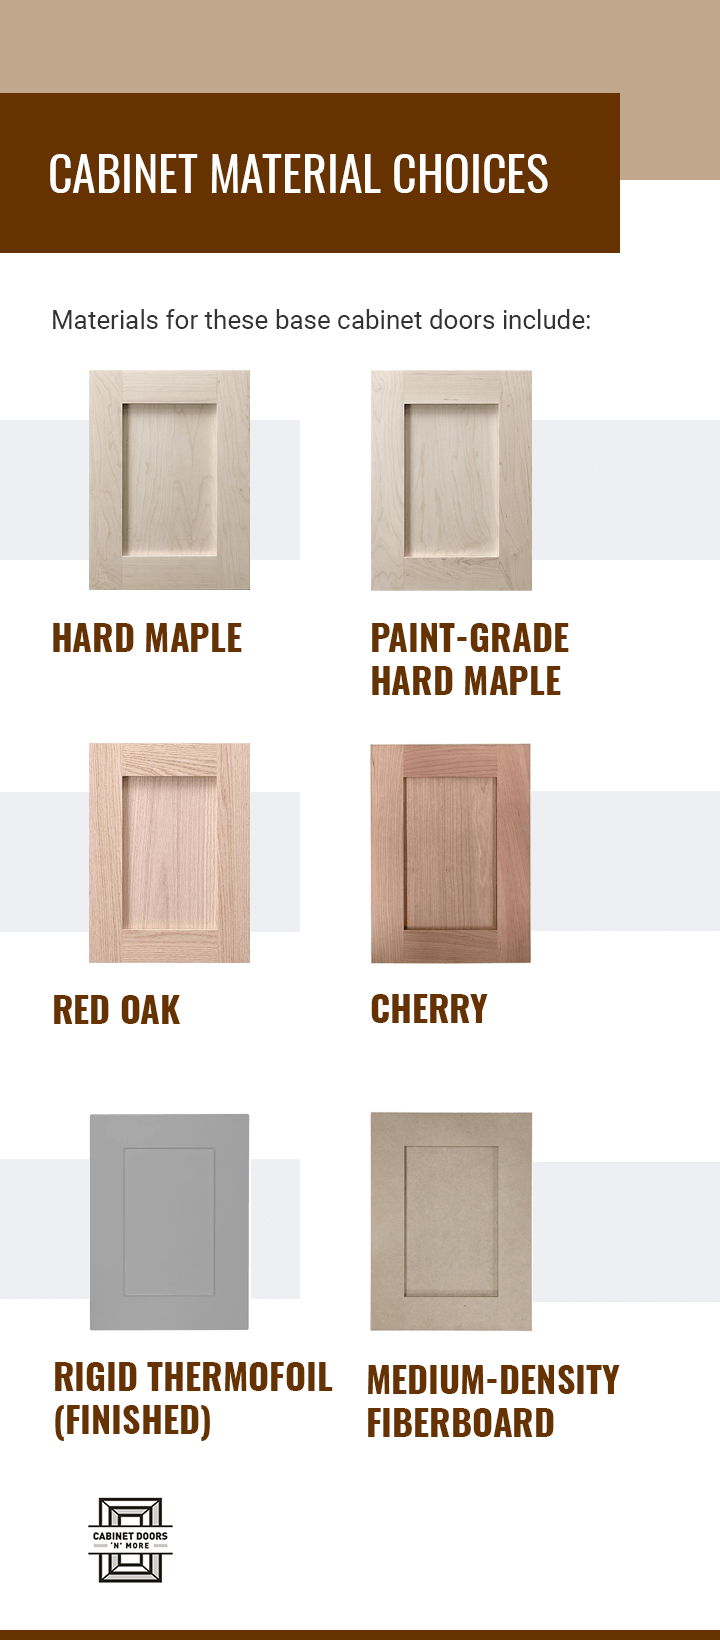 Cabinet Material Choices